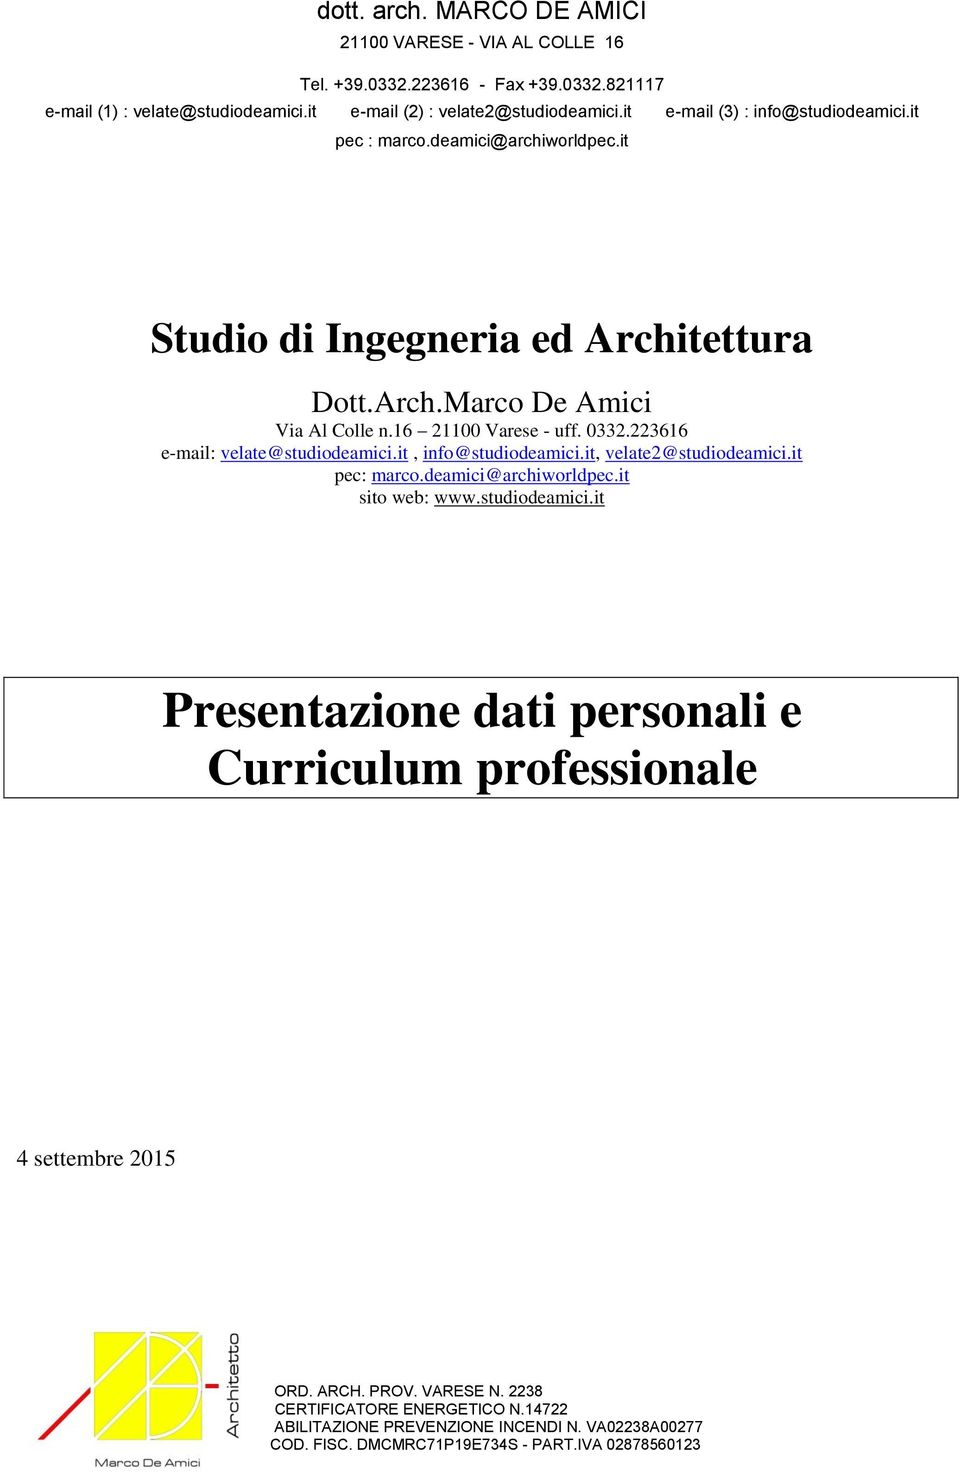 it, info@studiodeamici.it, velate2@studiodeamici.it pec: marco.